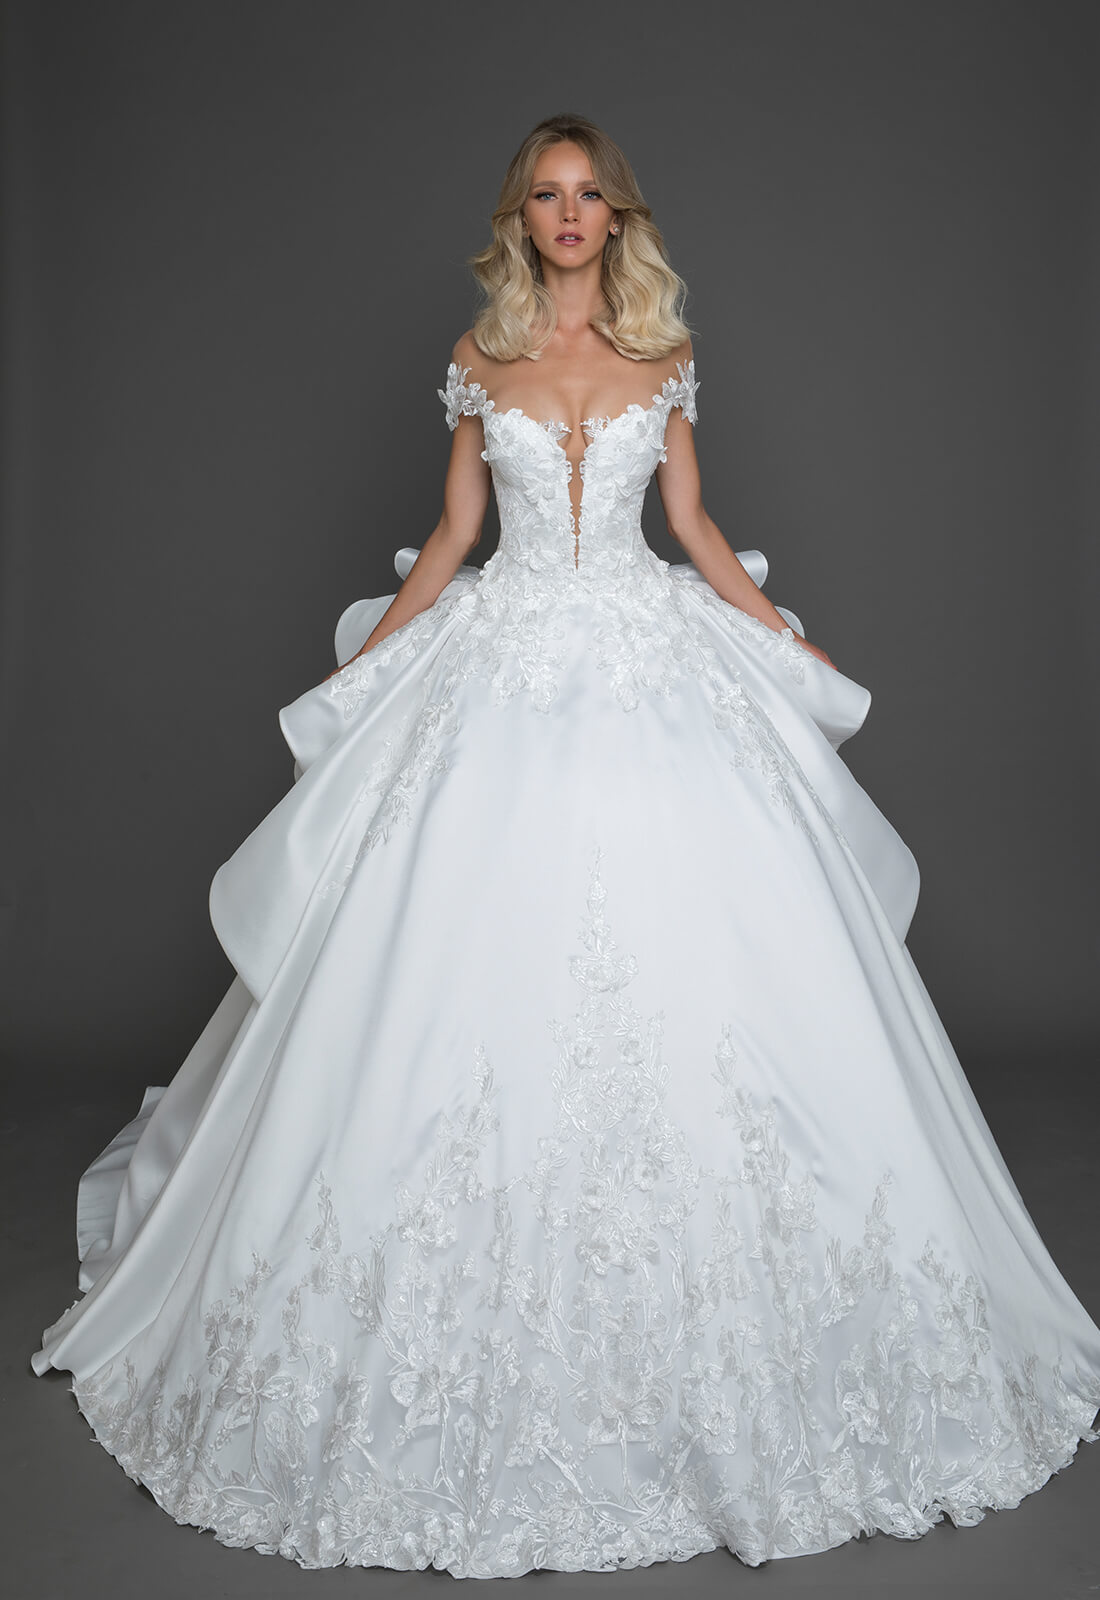 Sexy Ball Gown Wedding Dress  Kleinfeld Bridal. Lace Wedding Dress With Open Back And Cap Sleeves. Unique Wedding Dresses Ontario. Long Sleeve Wedding Dress Summer. Modern Wedding Dresses Not White. Famous Wedding Dress Store In Ny. Wedding Dresses Plus Size Discount. Lazaro Blush Wedding Dress Price. Big C Wedding Dresses Norwich